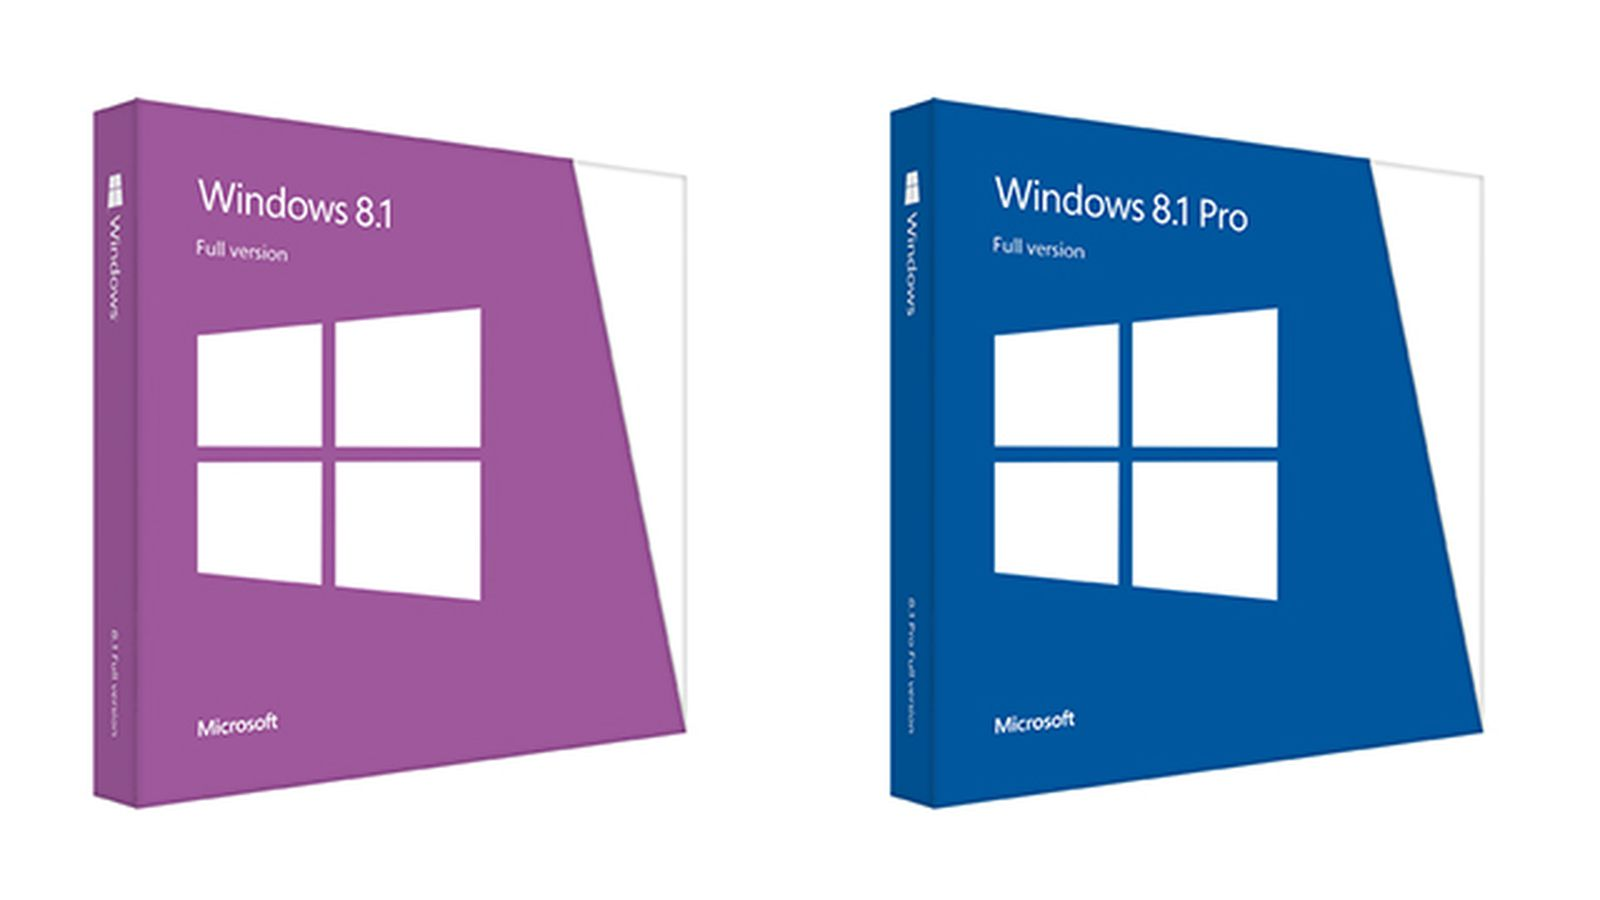 how to get back to windows 8 from 8.1